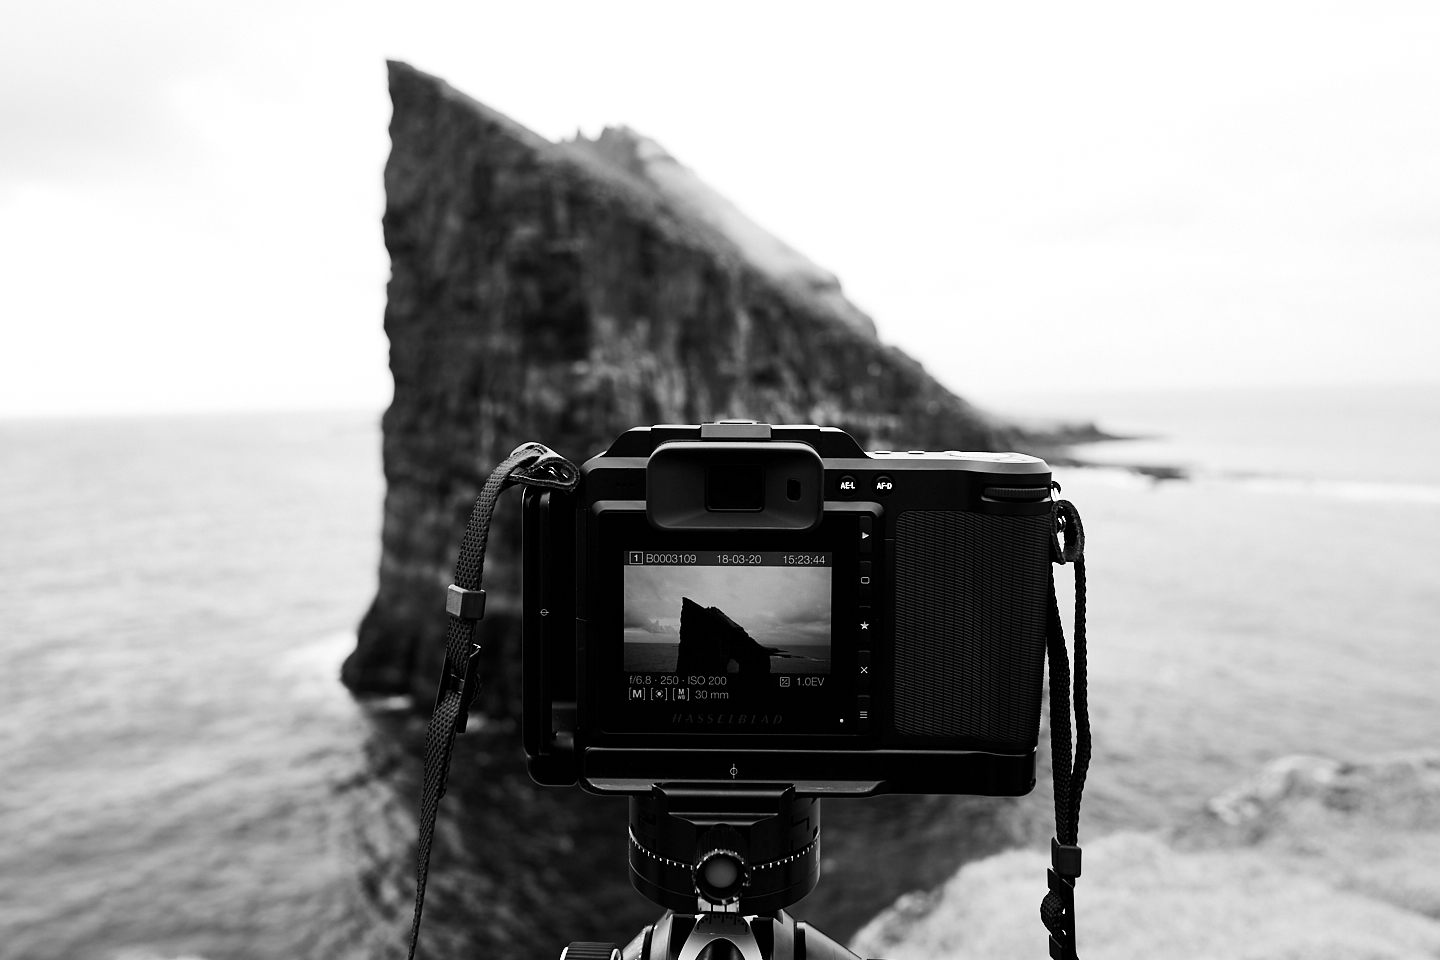 """Behind the scenes from one of my favorite locations """"Drangonir""""with 5 hours roundtrip hike! / Hasselblad X1D +30mm"""